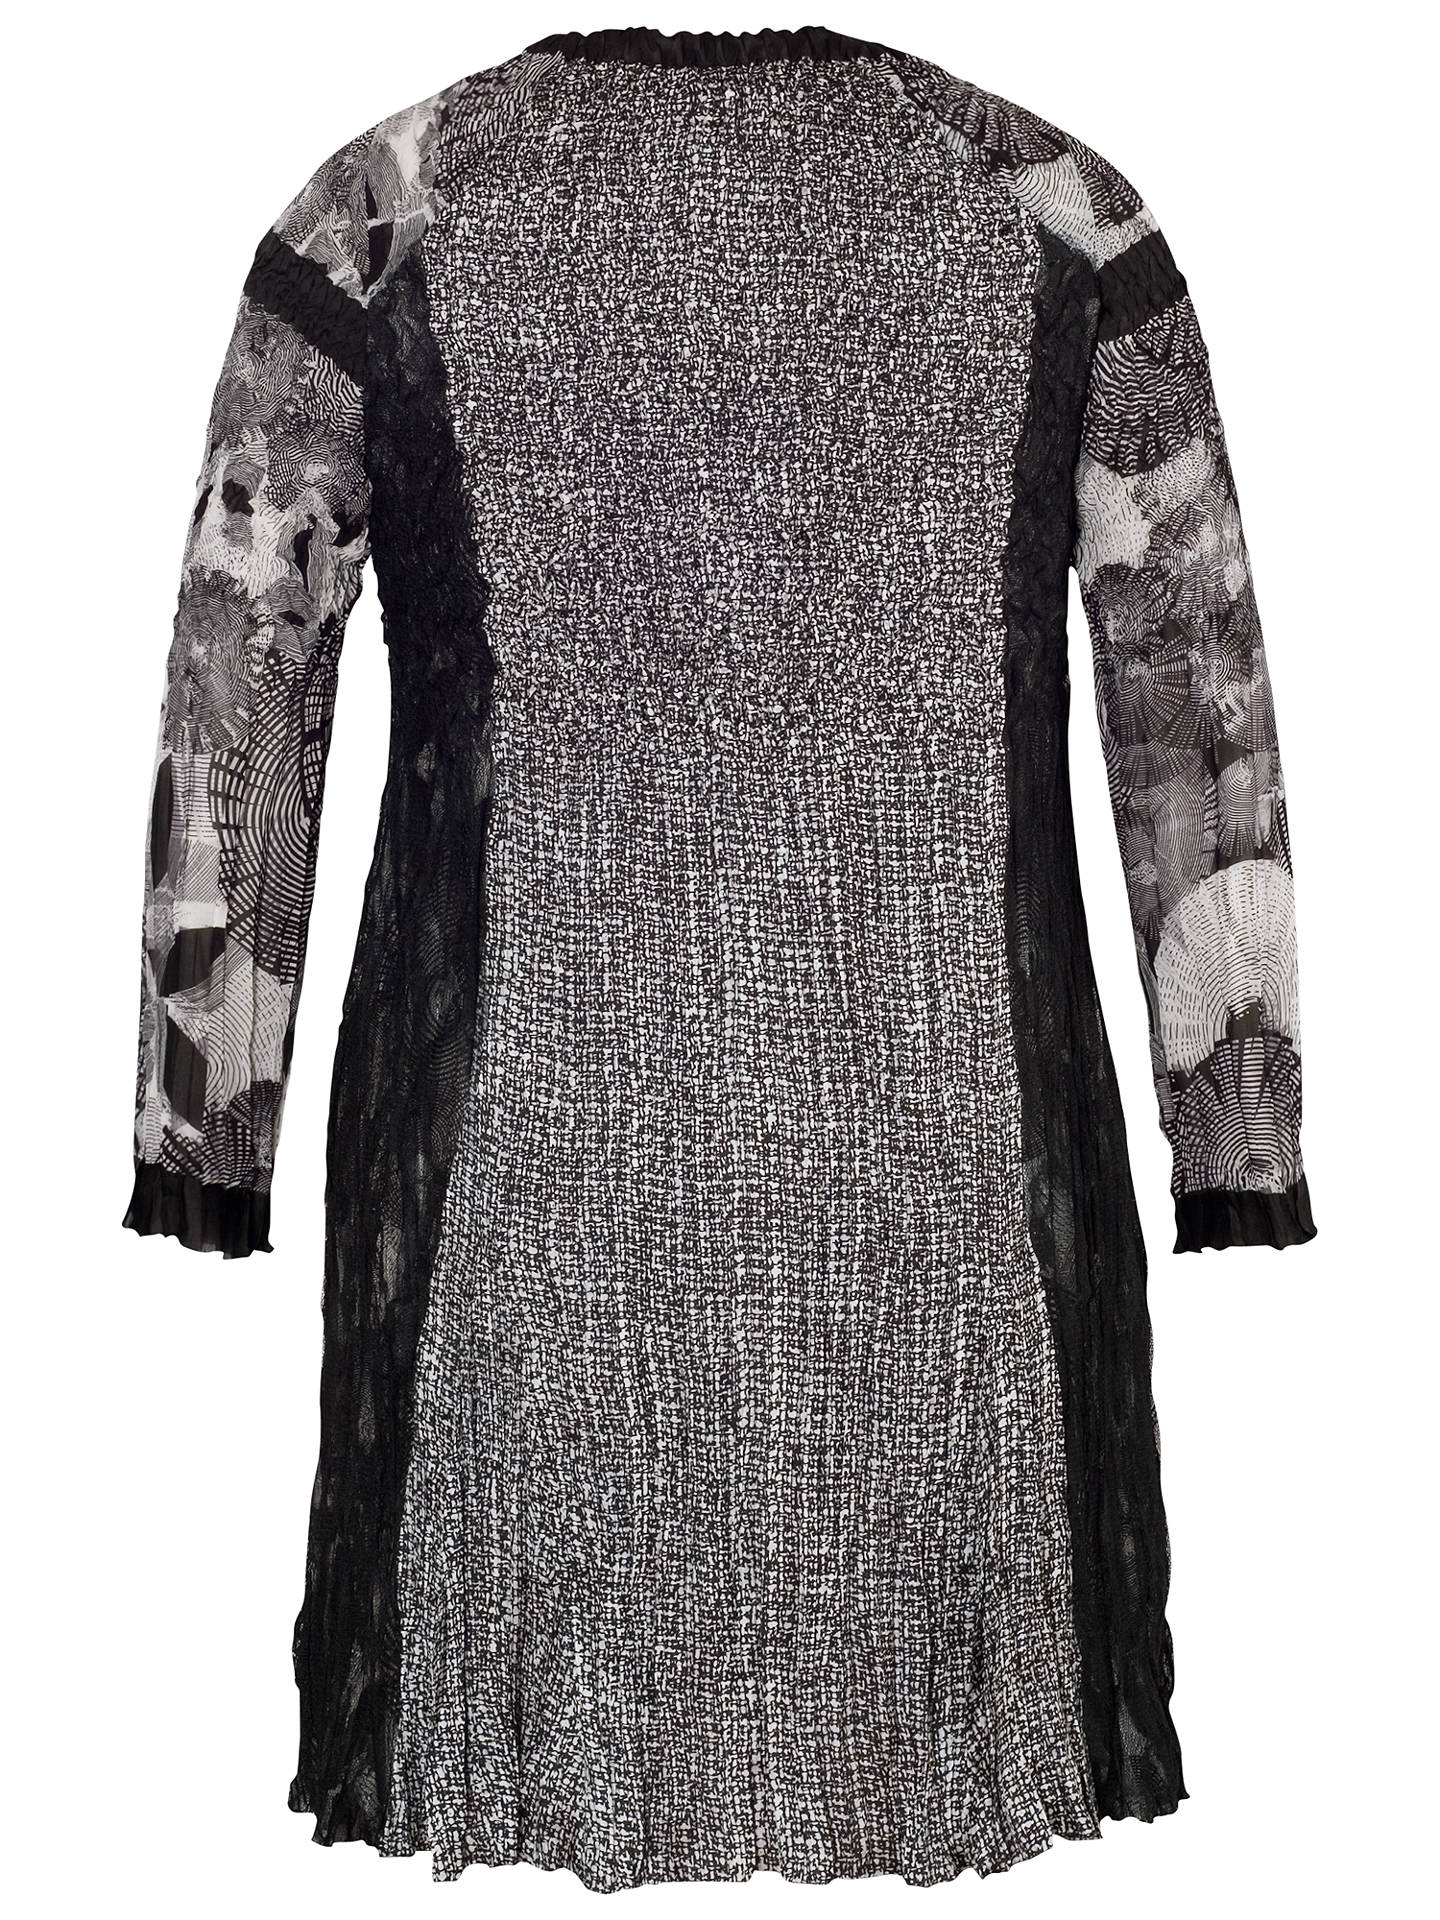 BuyChesca Patchwork Printed Coat, Black/Ivory, 12-14 Online at johnlewis.com